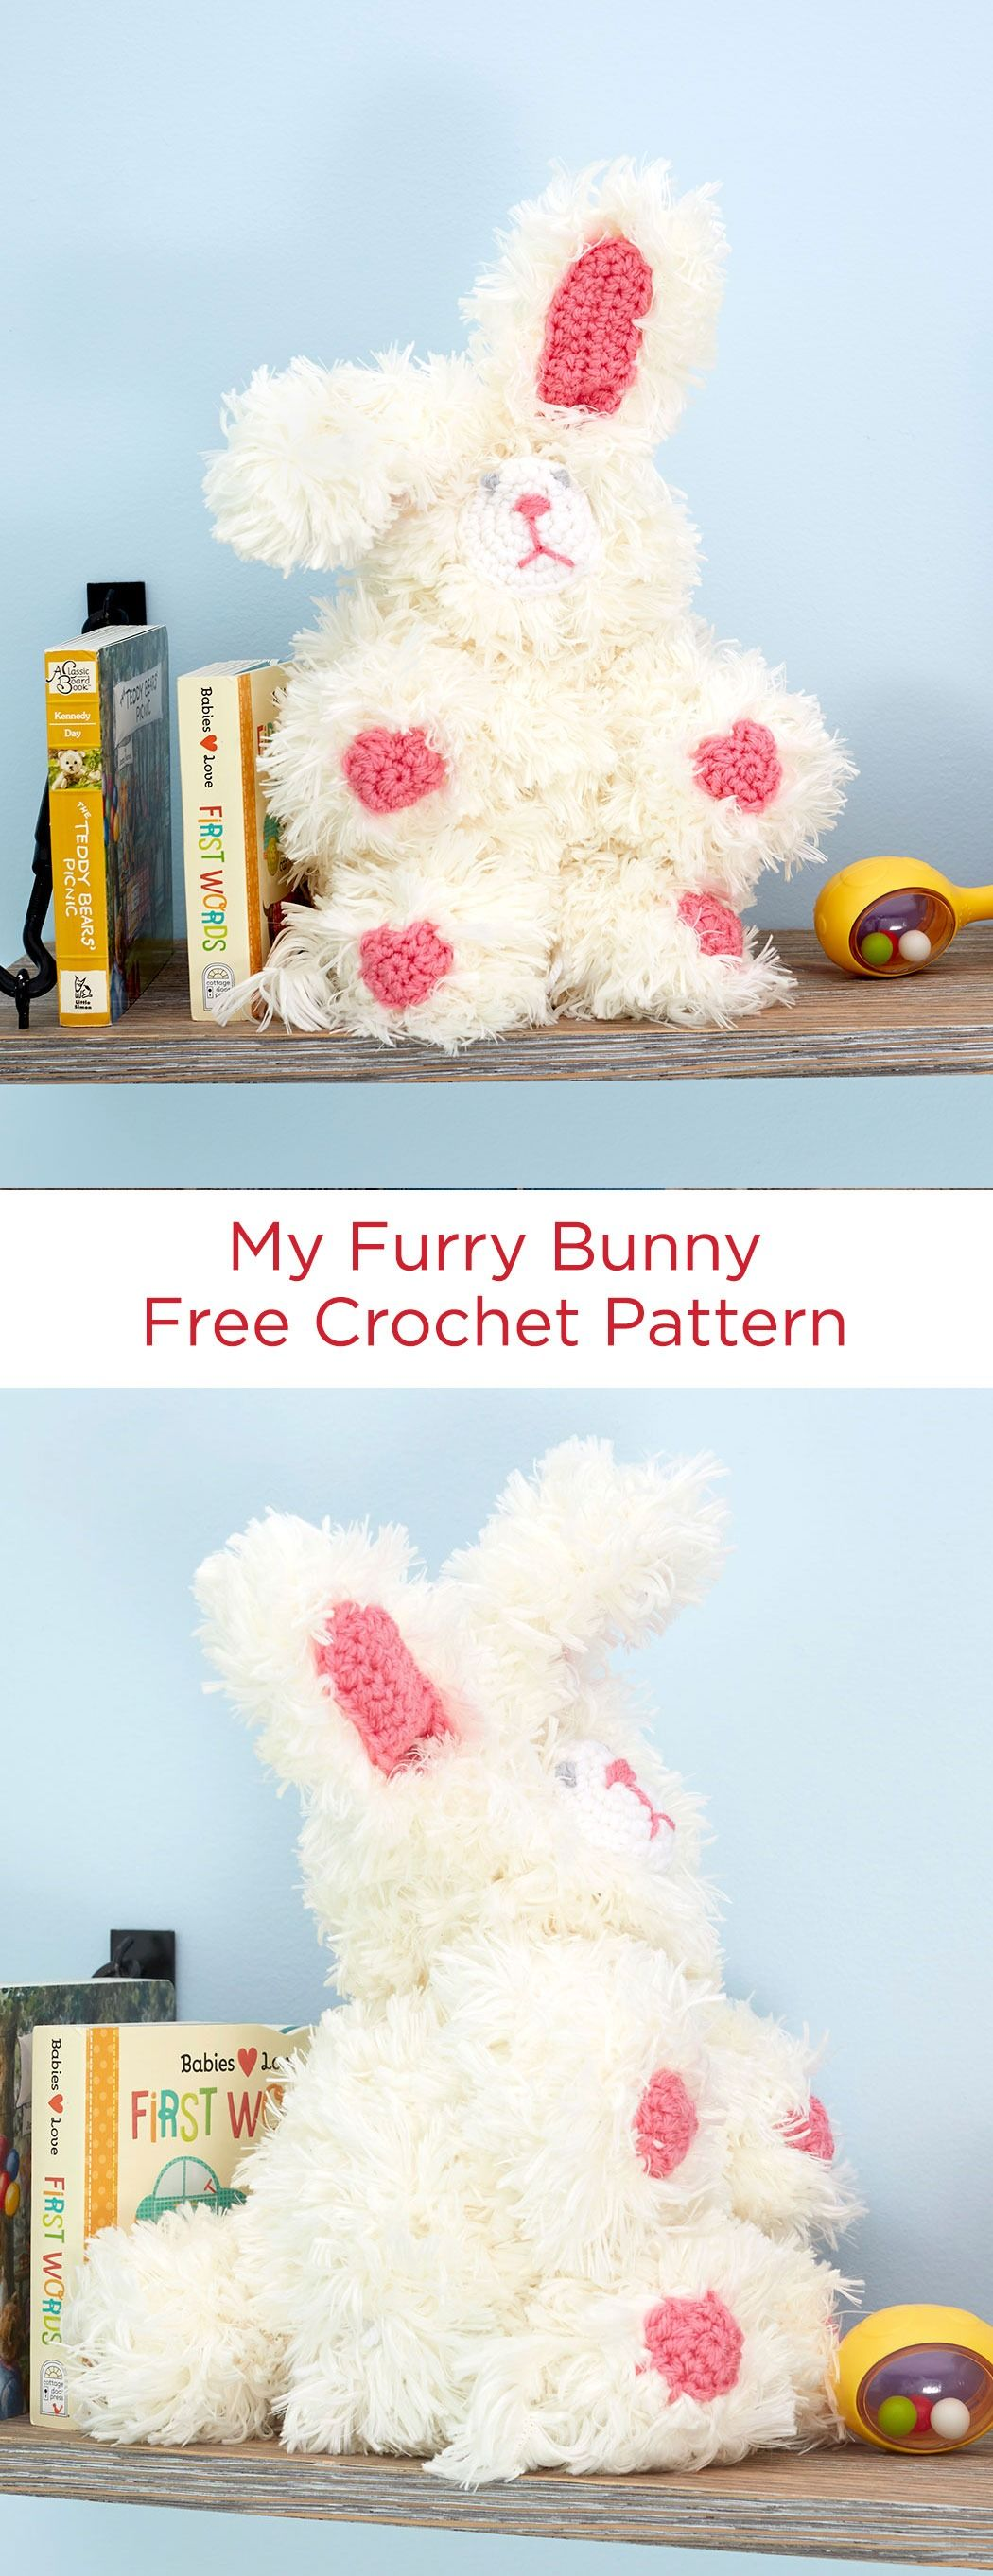 My Furry Bunny Free Crochet Pattern in Red Heart Yarns -- Crochet this sweet bunny as a gift that is sure to be hugged and loved! This furry friend is perfect for Easter or any time of the year.